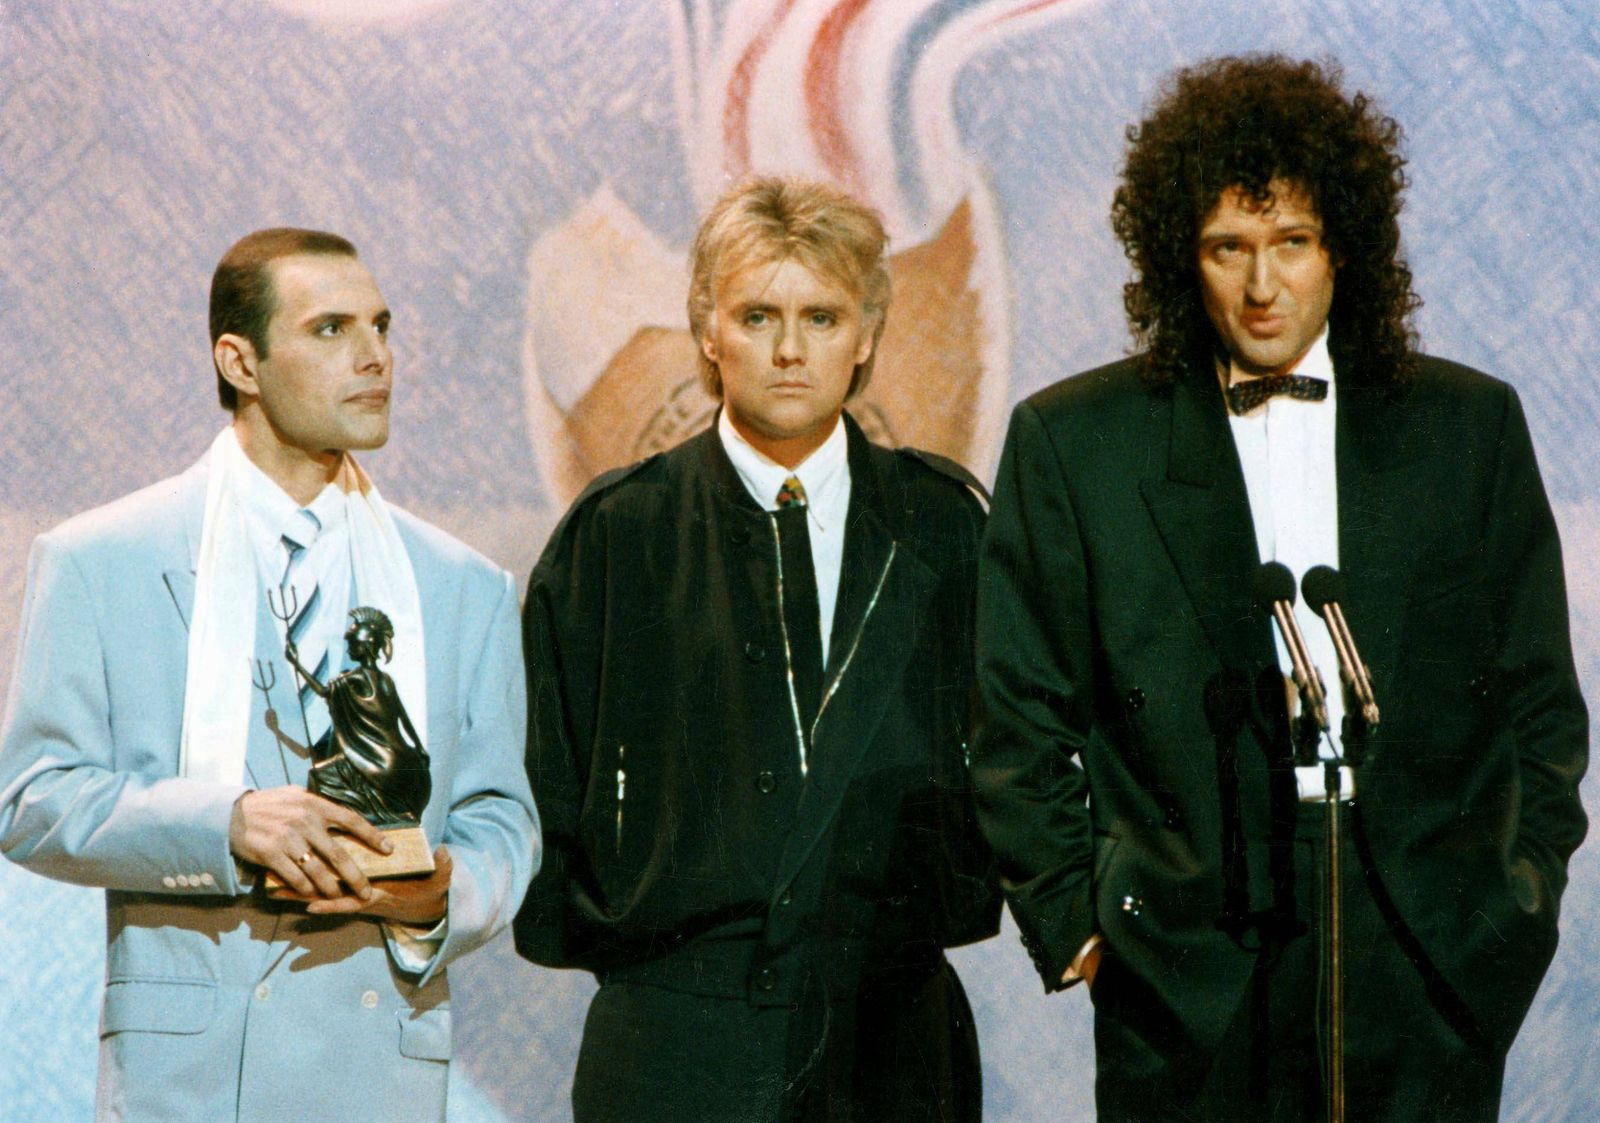 February 1990: Three members of the British rock group Queen , (l-r) Freddie Mercury, Roger Taylor and Brian May at the